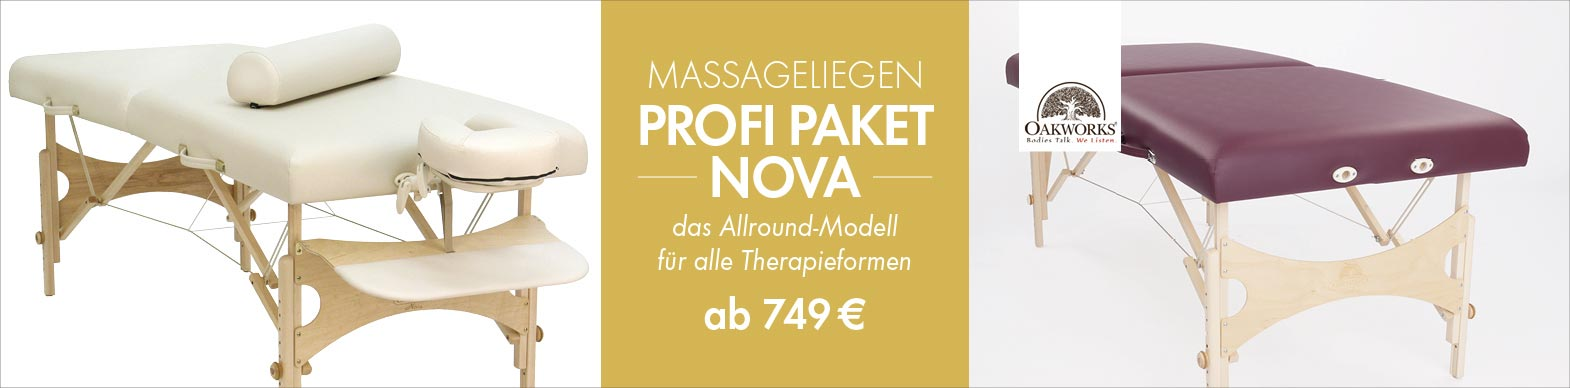 Profi Paket Nova - Allround Massageliege